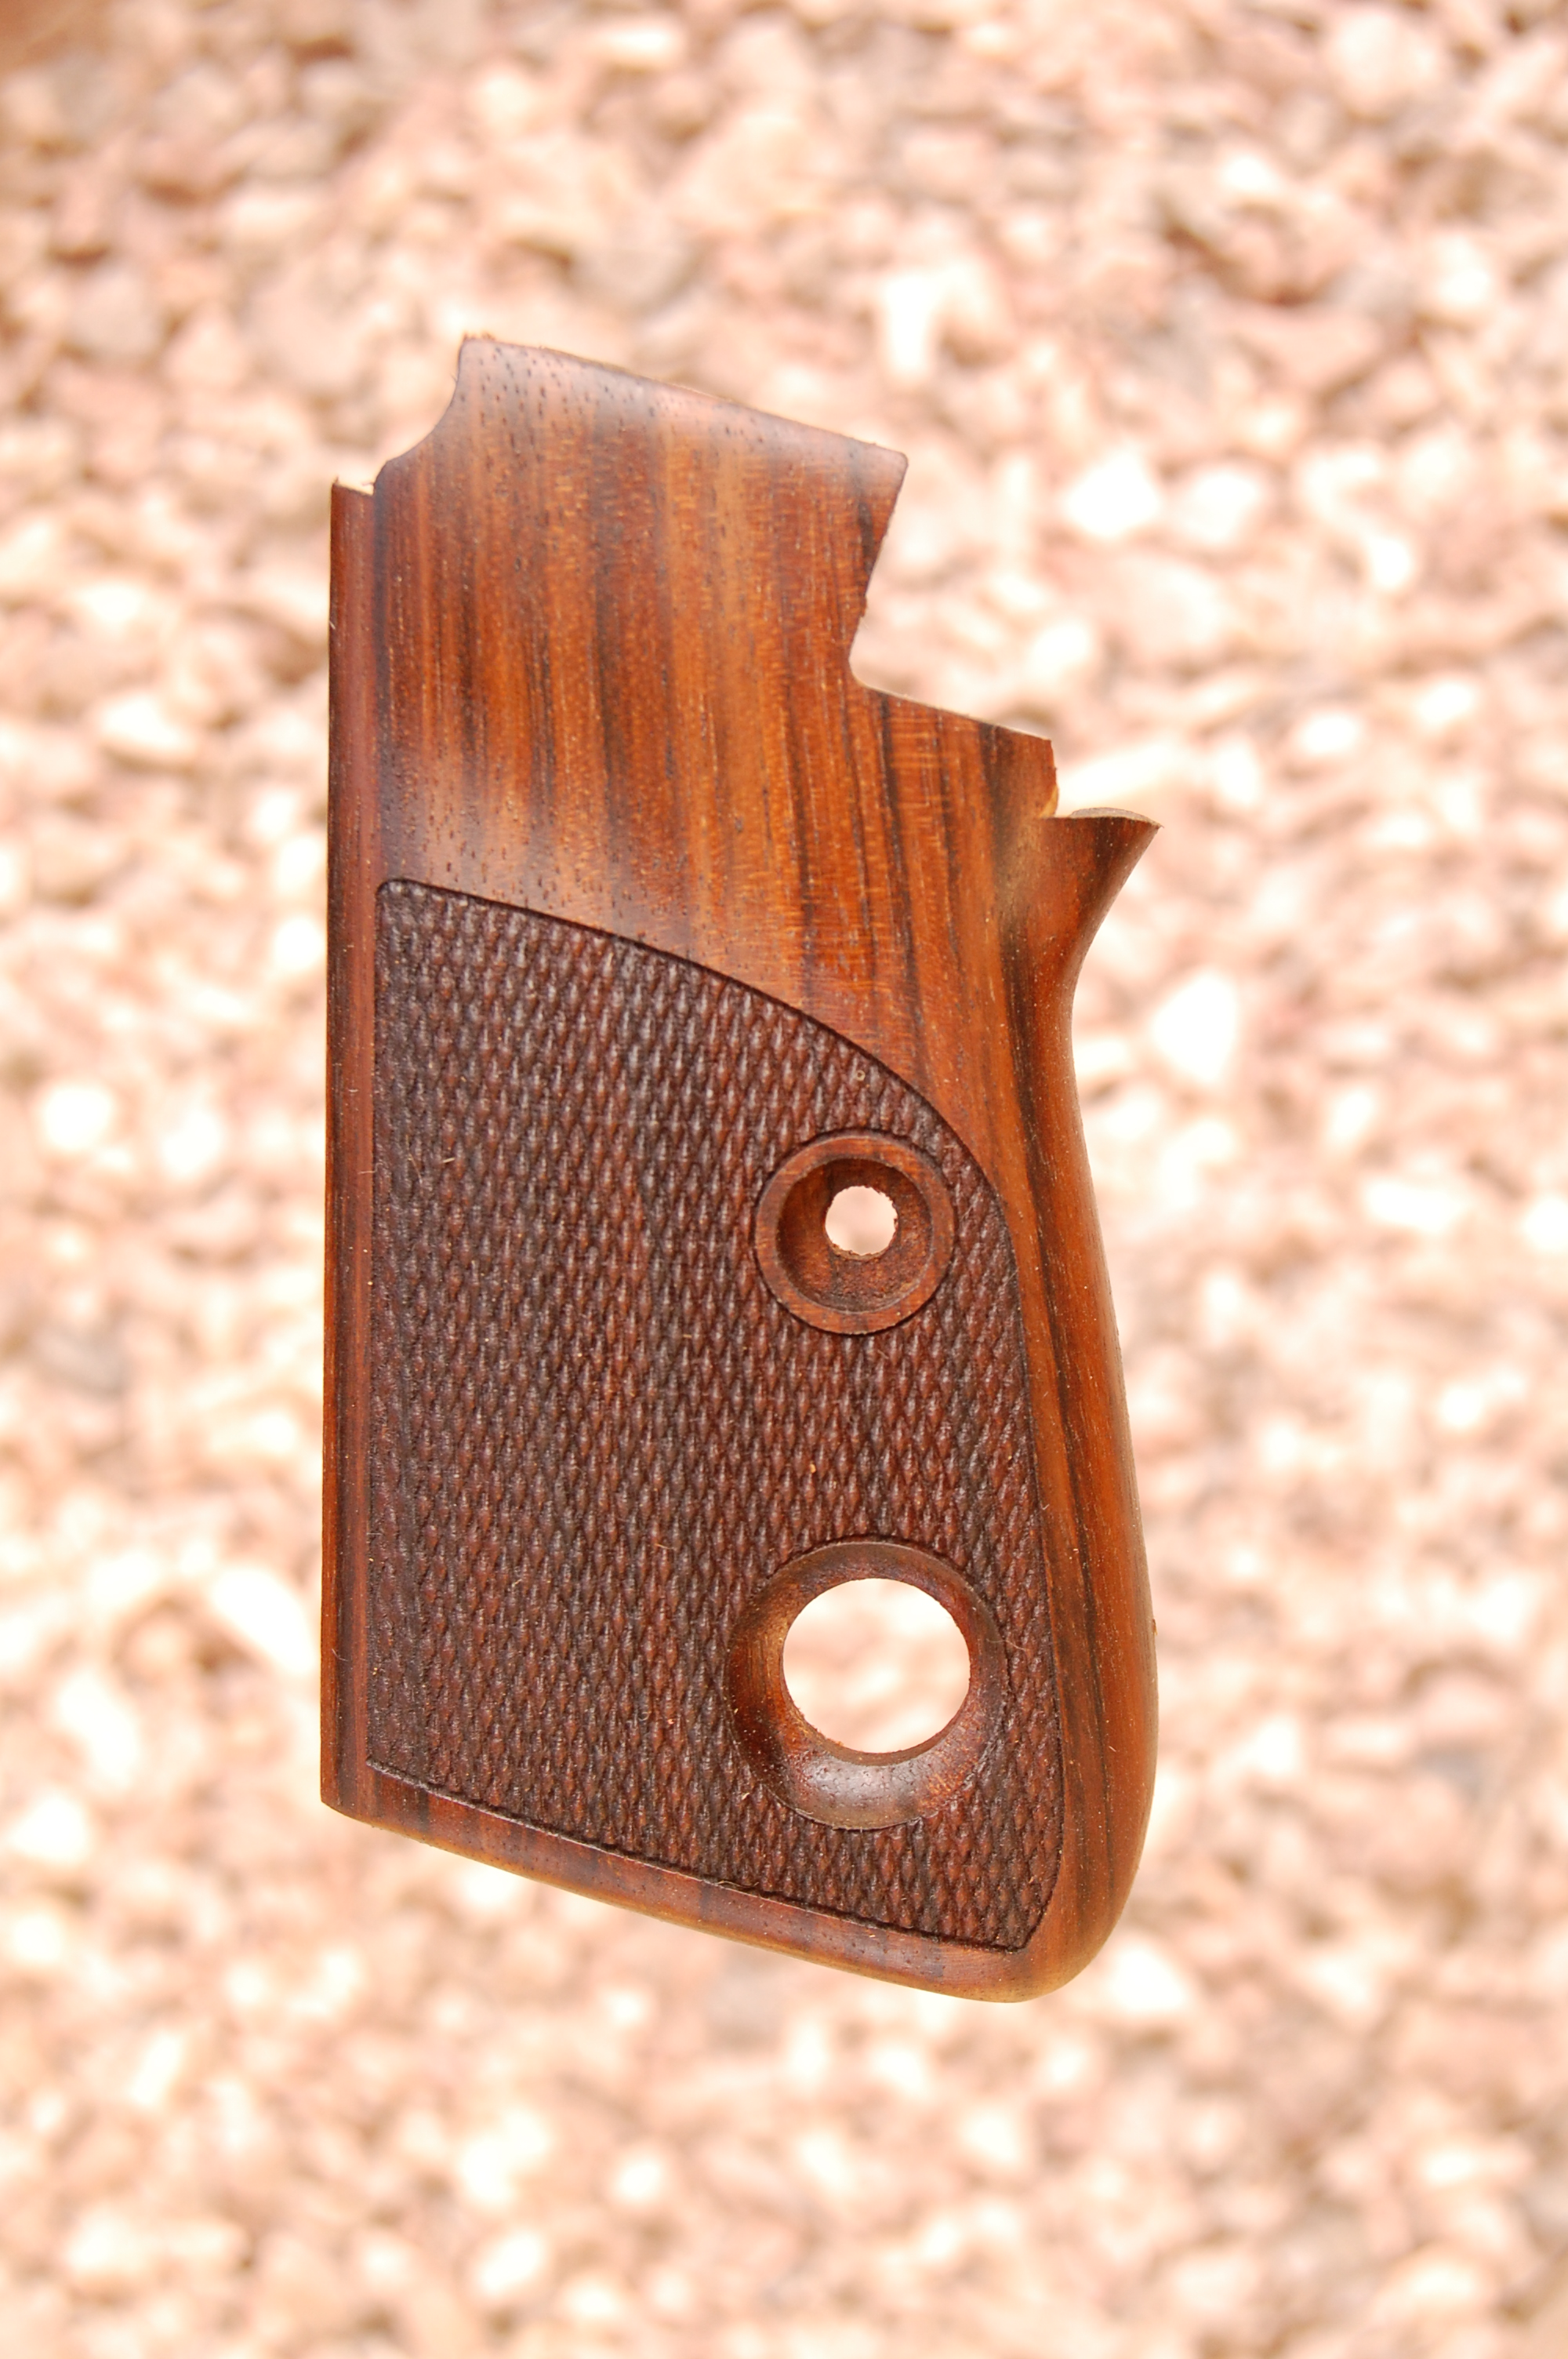 BERETTA 70/71 2nd type grips (checkered) - full size